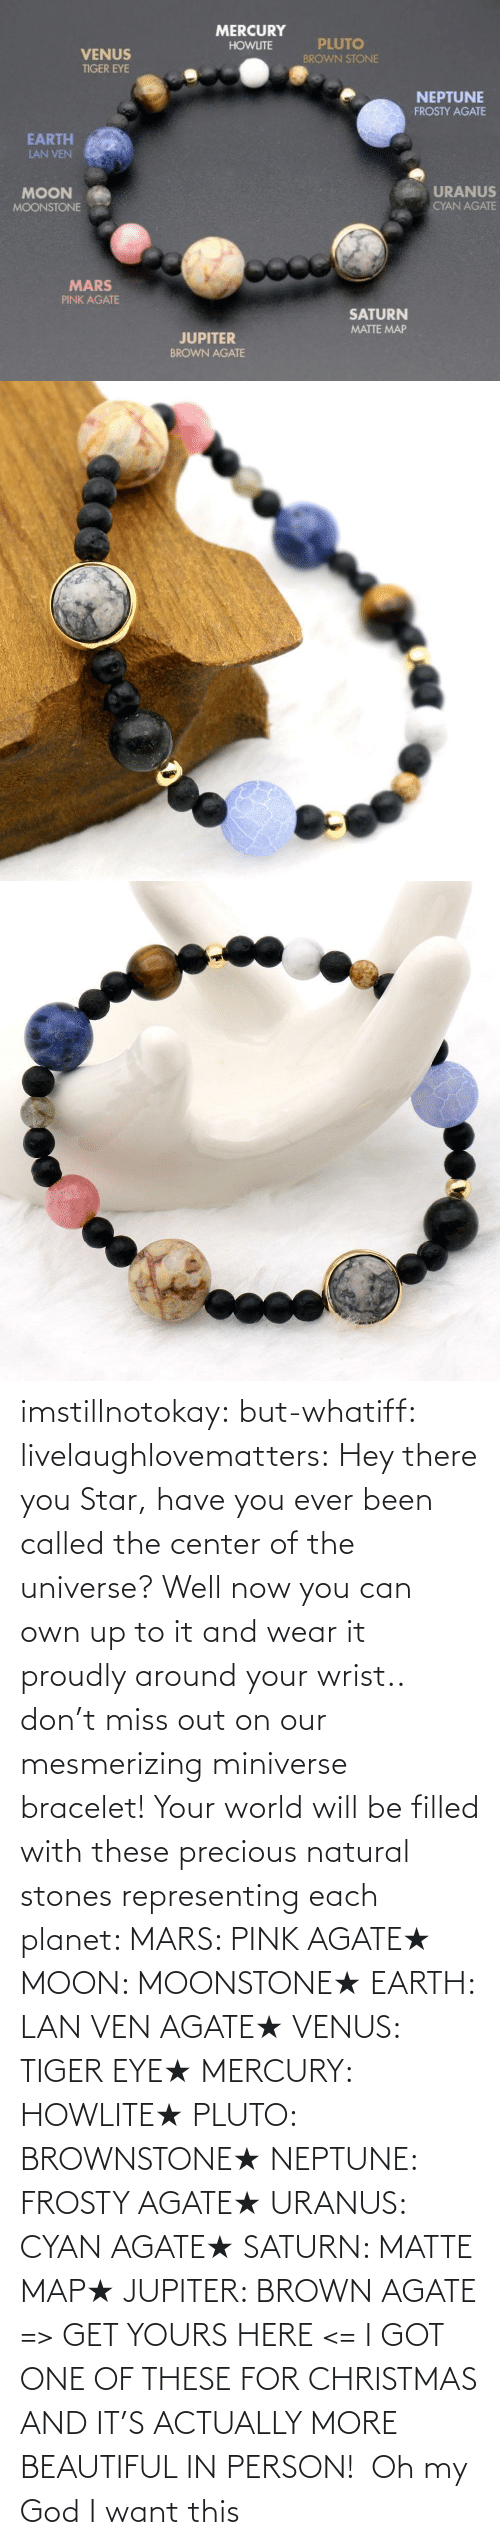 will: imstillnotokay:  but-whatiff: livelaughlovematters:  Hey there you Star, have you ever been called the center of the universe? Well now you can own up to it and wear it proudly around your wrist.. don't miss out on our mesmerizing miniverse bracelet! Your world will be filled with these precious natural stones representing each planet:  MARS: PINK AGATE★ MOON: MOONSTONE★ EARTH: LAN VEN AGATE★ VENUS: TIGER EYE★ MERCURY: HOWLITE★ PLUTO: BROWNSTONE★ NEPTUNE: FROSTY AGATE★ URANUS: CYAN AGATE★ SATURN: MATTE MAP★ JUPITER: BROWN AGATE => GET YOURS HERE <=  I GOT ONE OF THESE FOR CHRISTMAS AND IT'S ACTUALLY MORE BEAUTIFUL IN PERSON!     Oh my God I want this